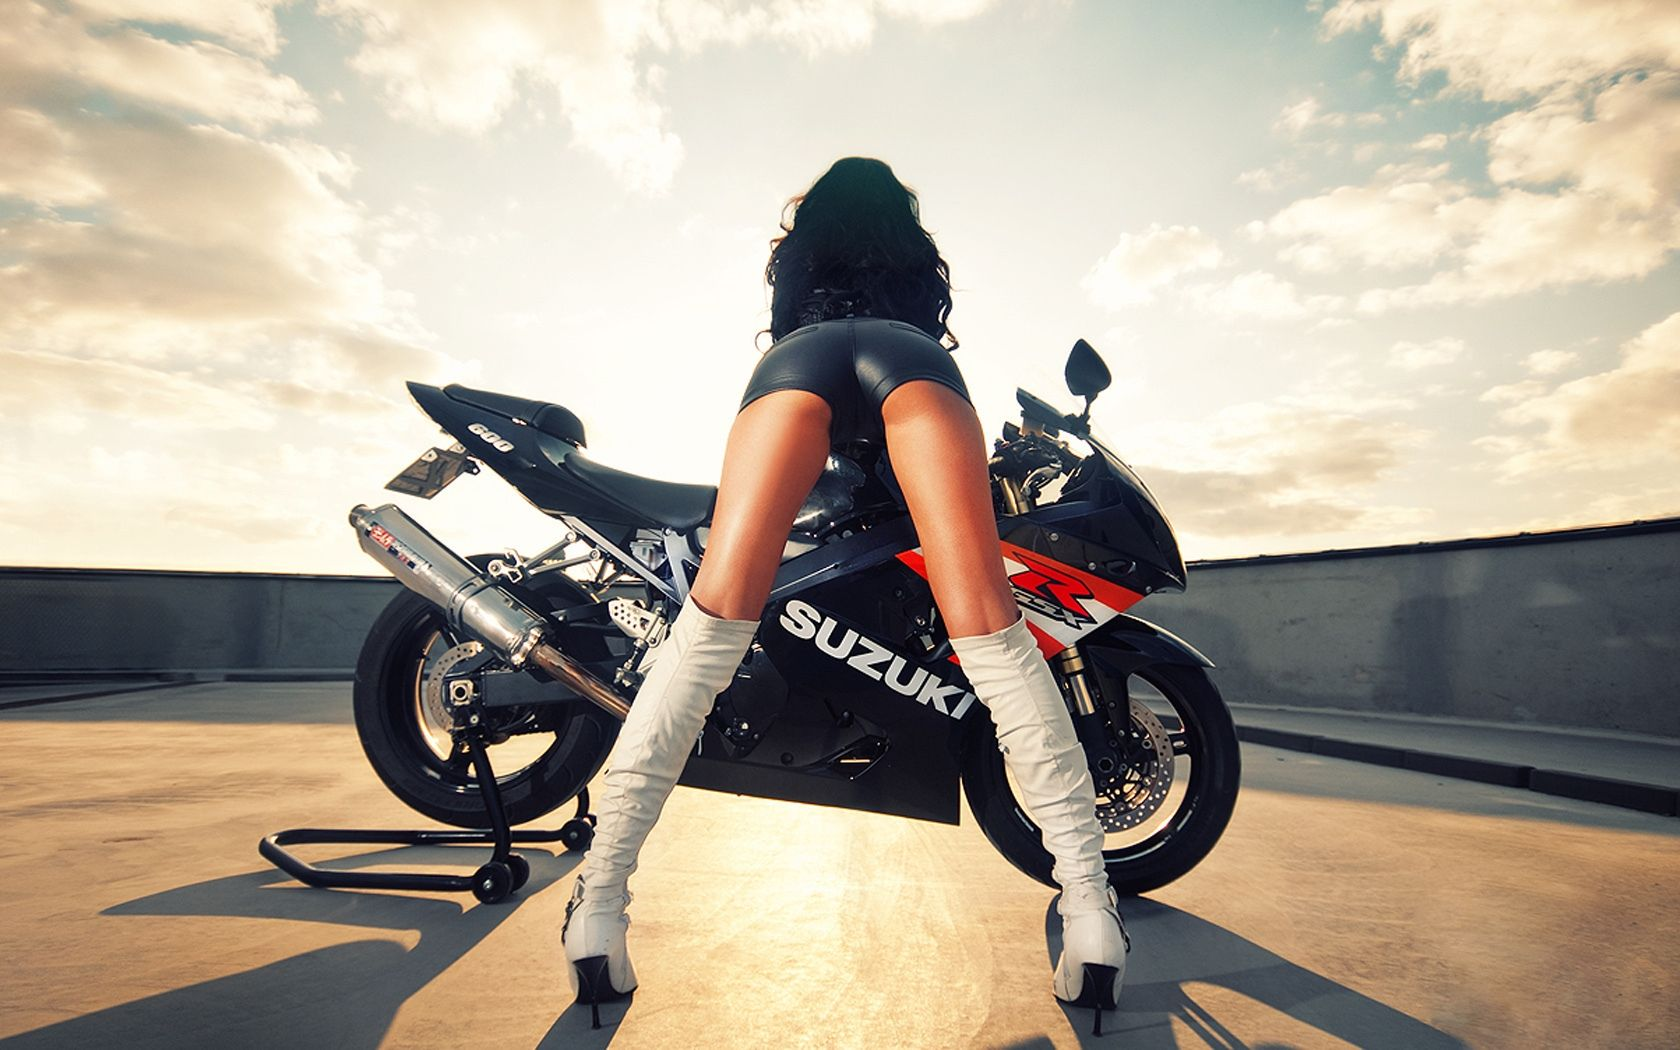 Pin By HD Wallpapers On Bike Cars Wallpapers Motorcycle Bike